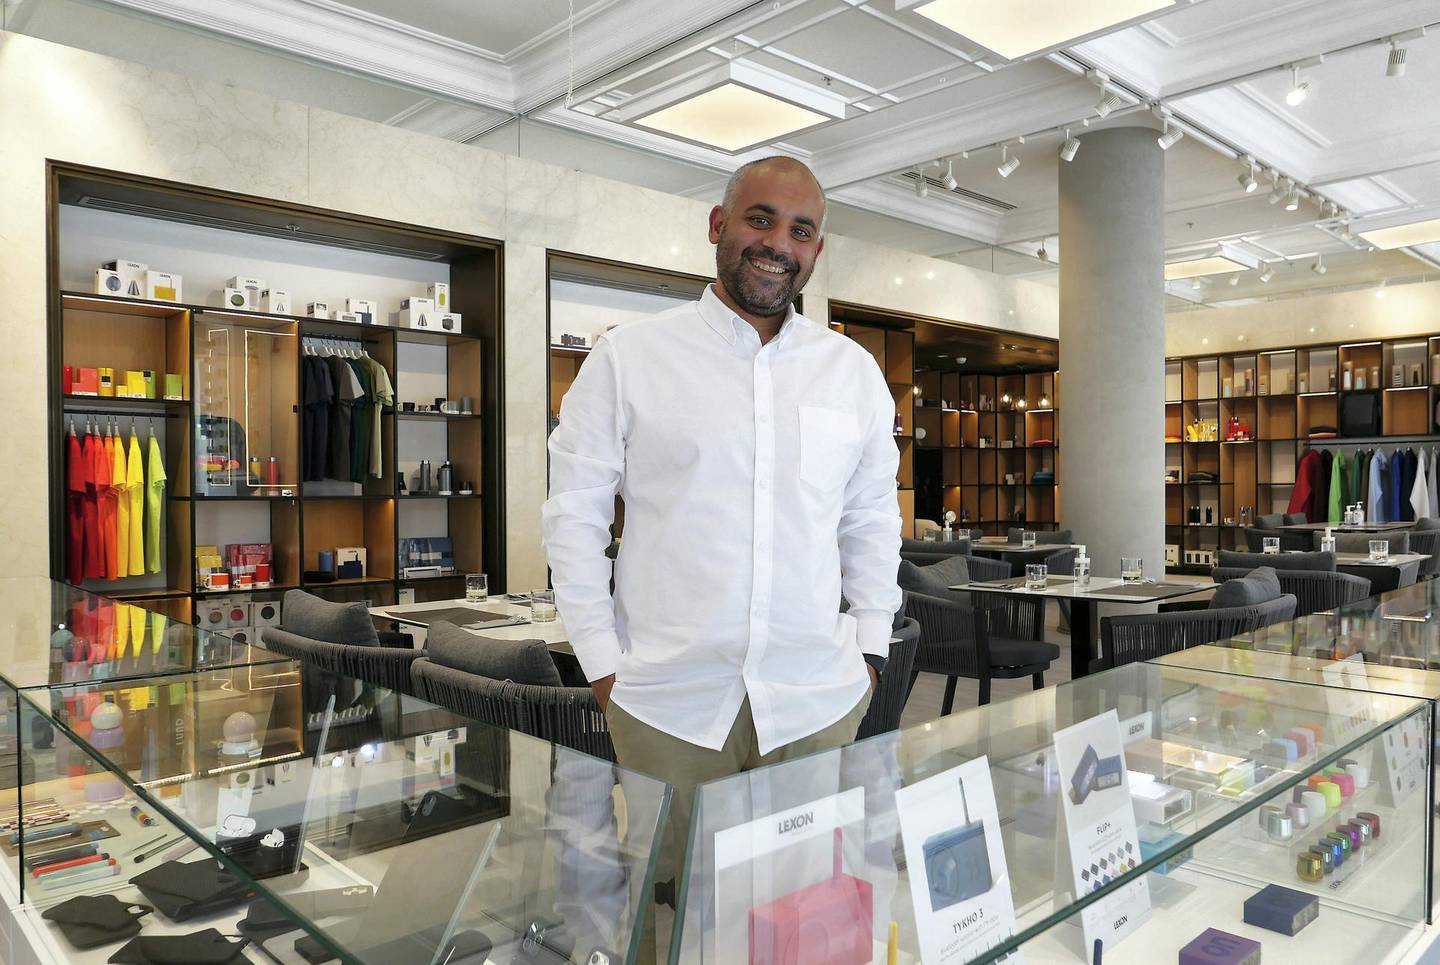 Rayan Toufic Daouk, owner of The Name concept store and a resto café at Dubai Design District in Dubai on June 23,2021. Pawan Singh / The National. Story by Janice Rodrigues